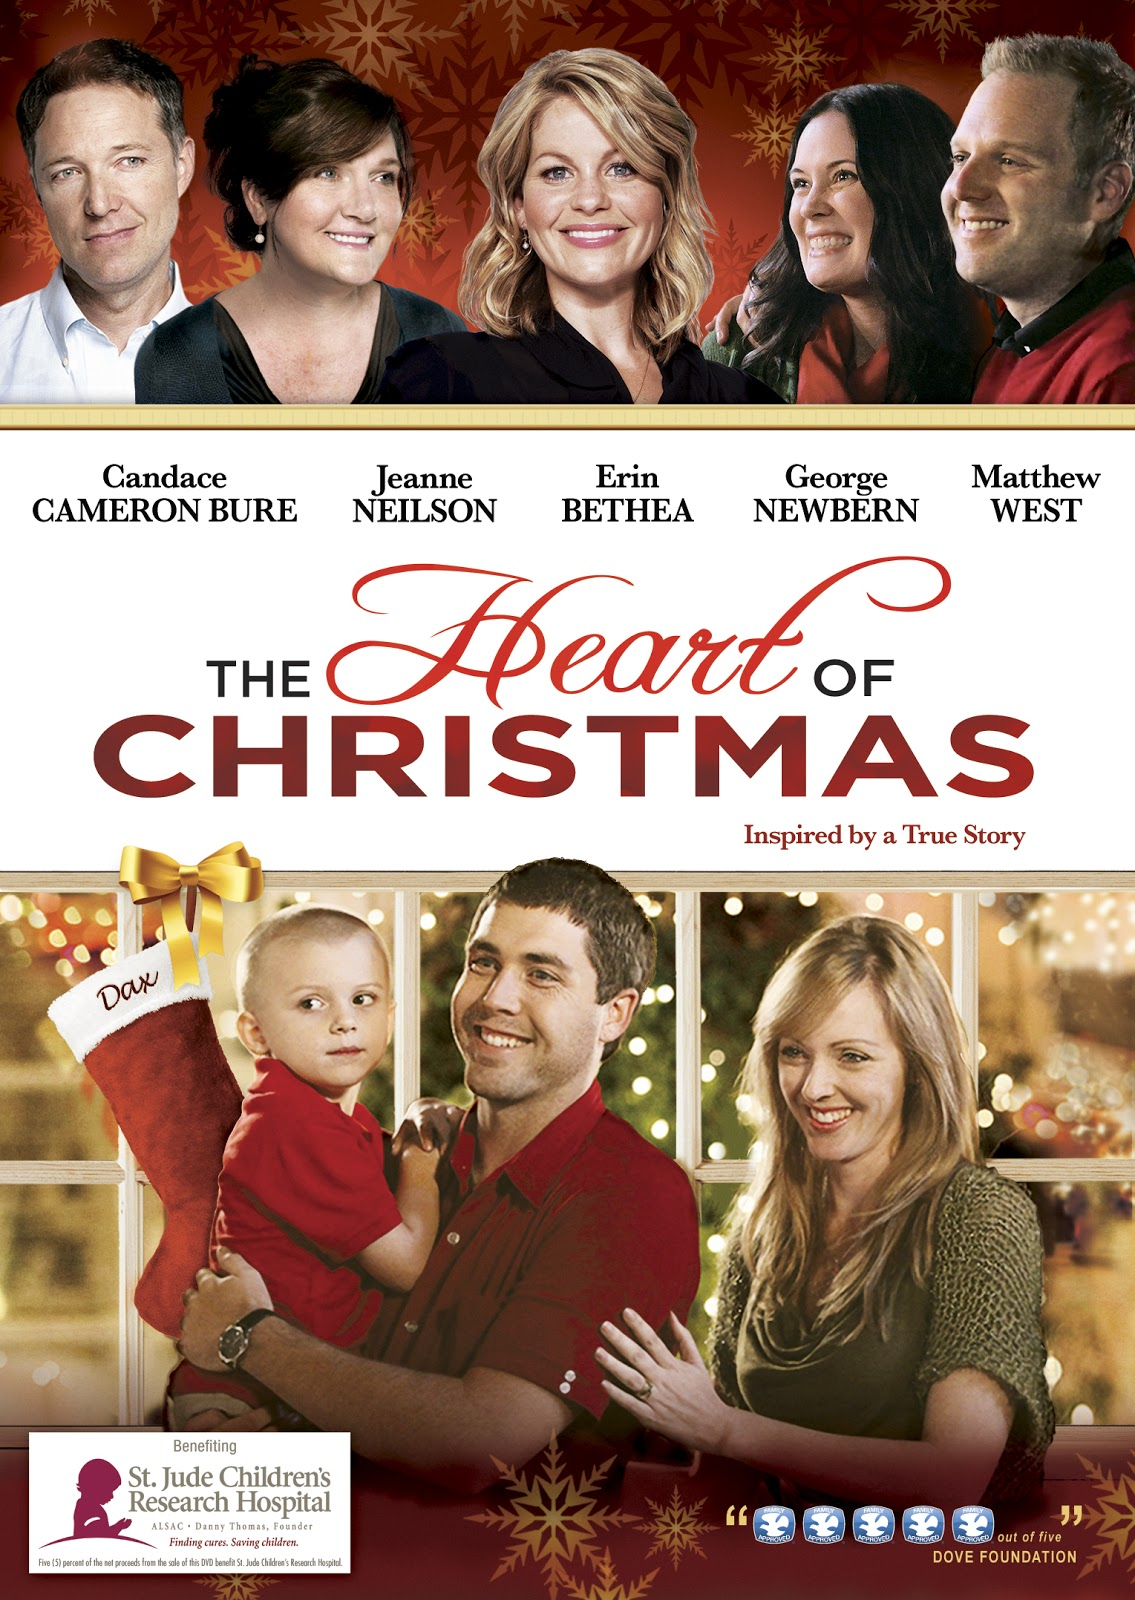 The Green Eyed Momma: {Giveaway Closed} The Heart Of Christmas on DVD